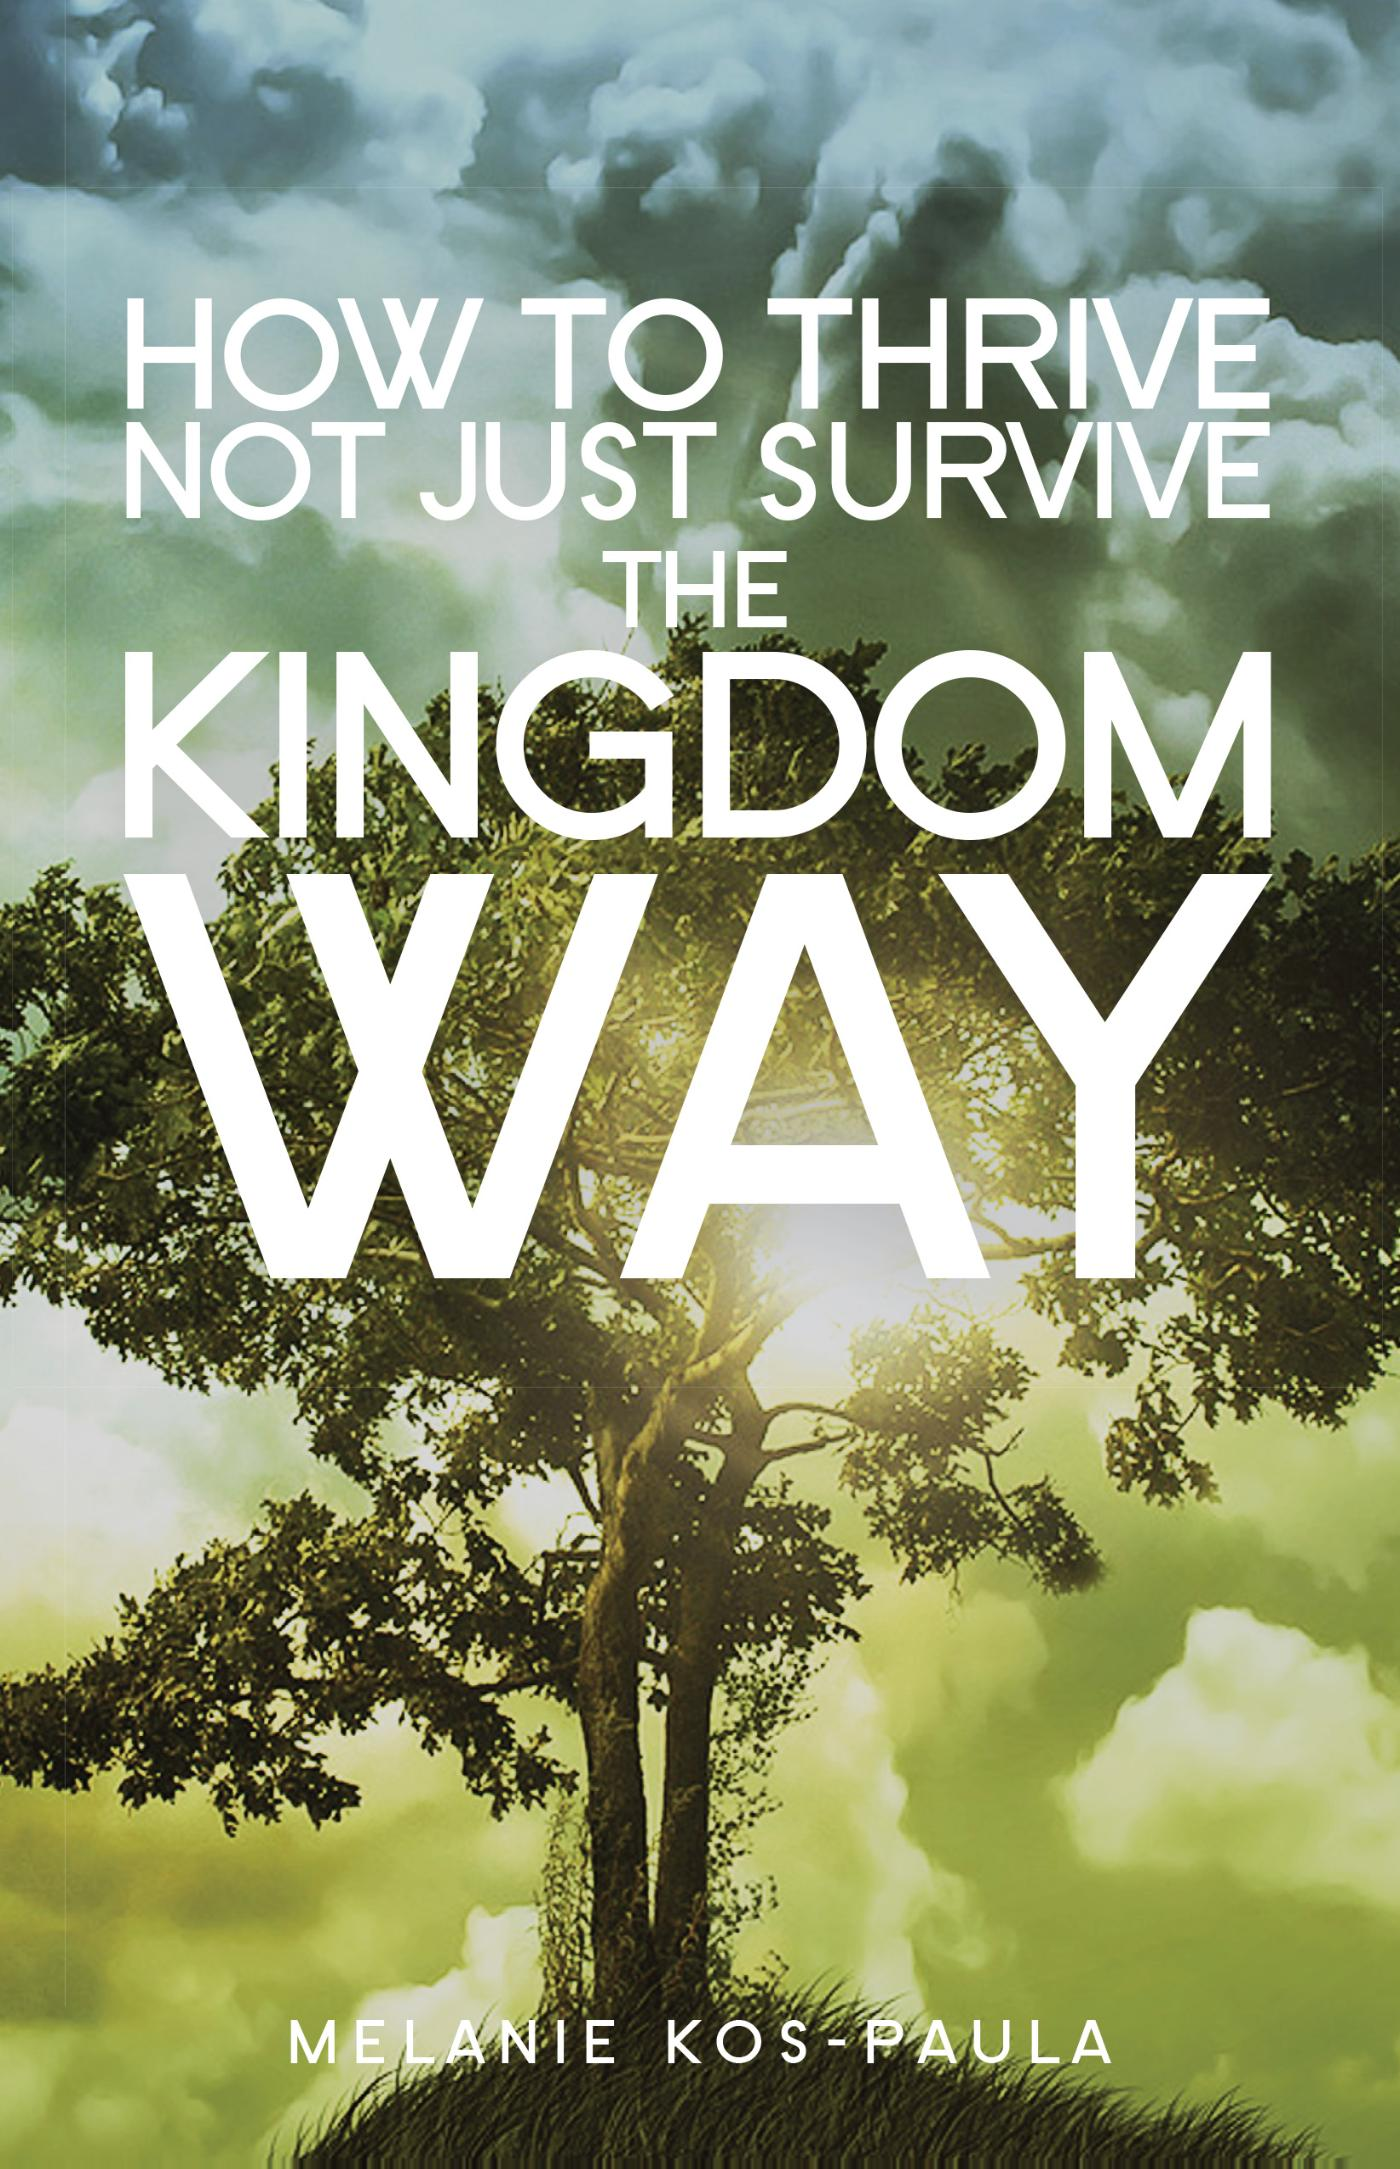 How to thrive not just survive the kingdom way